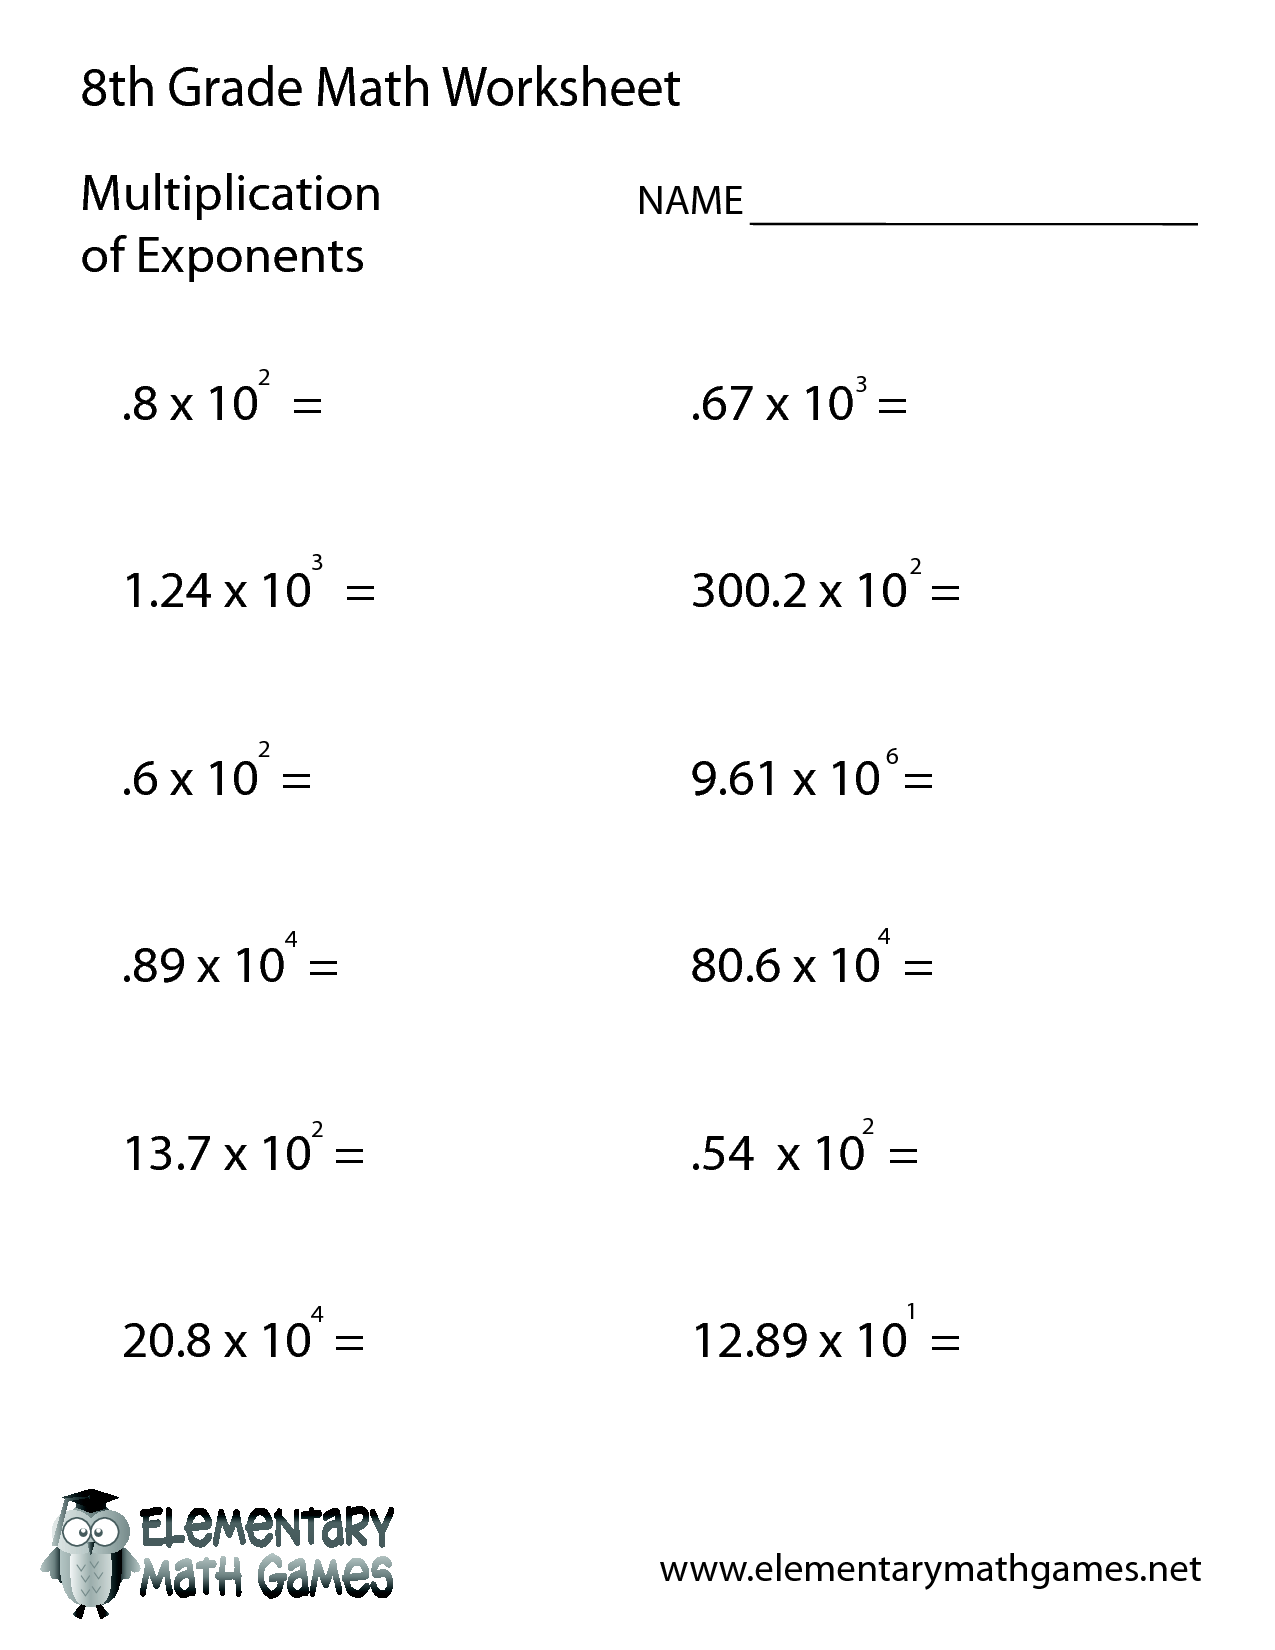 8th Grade Math Problems Practice